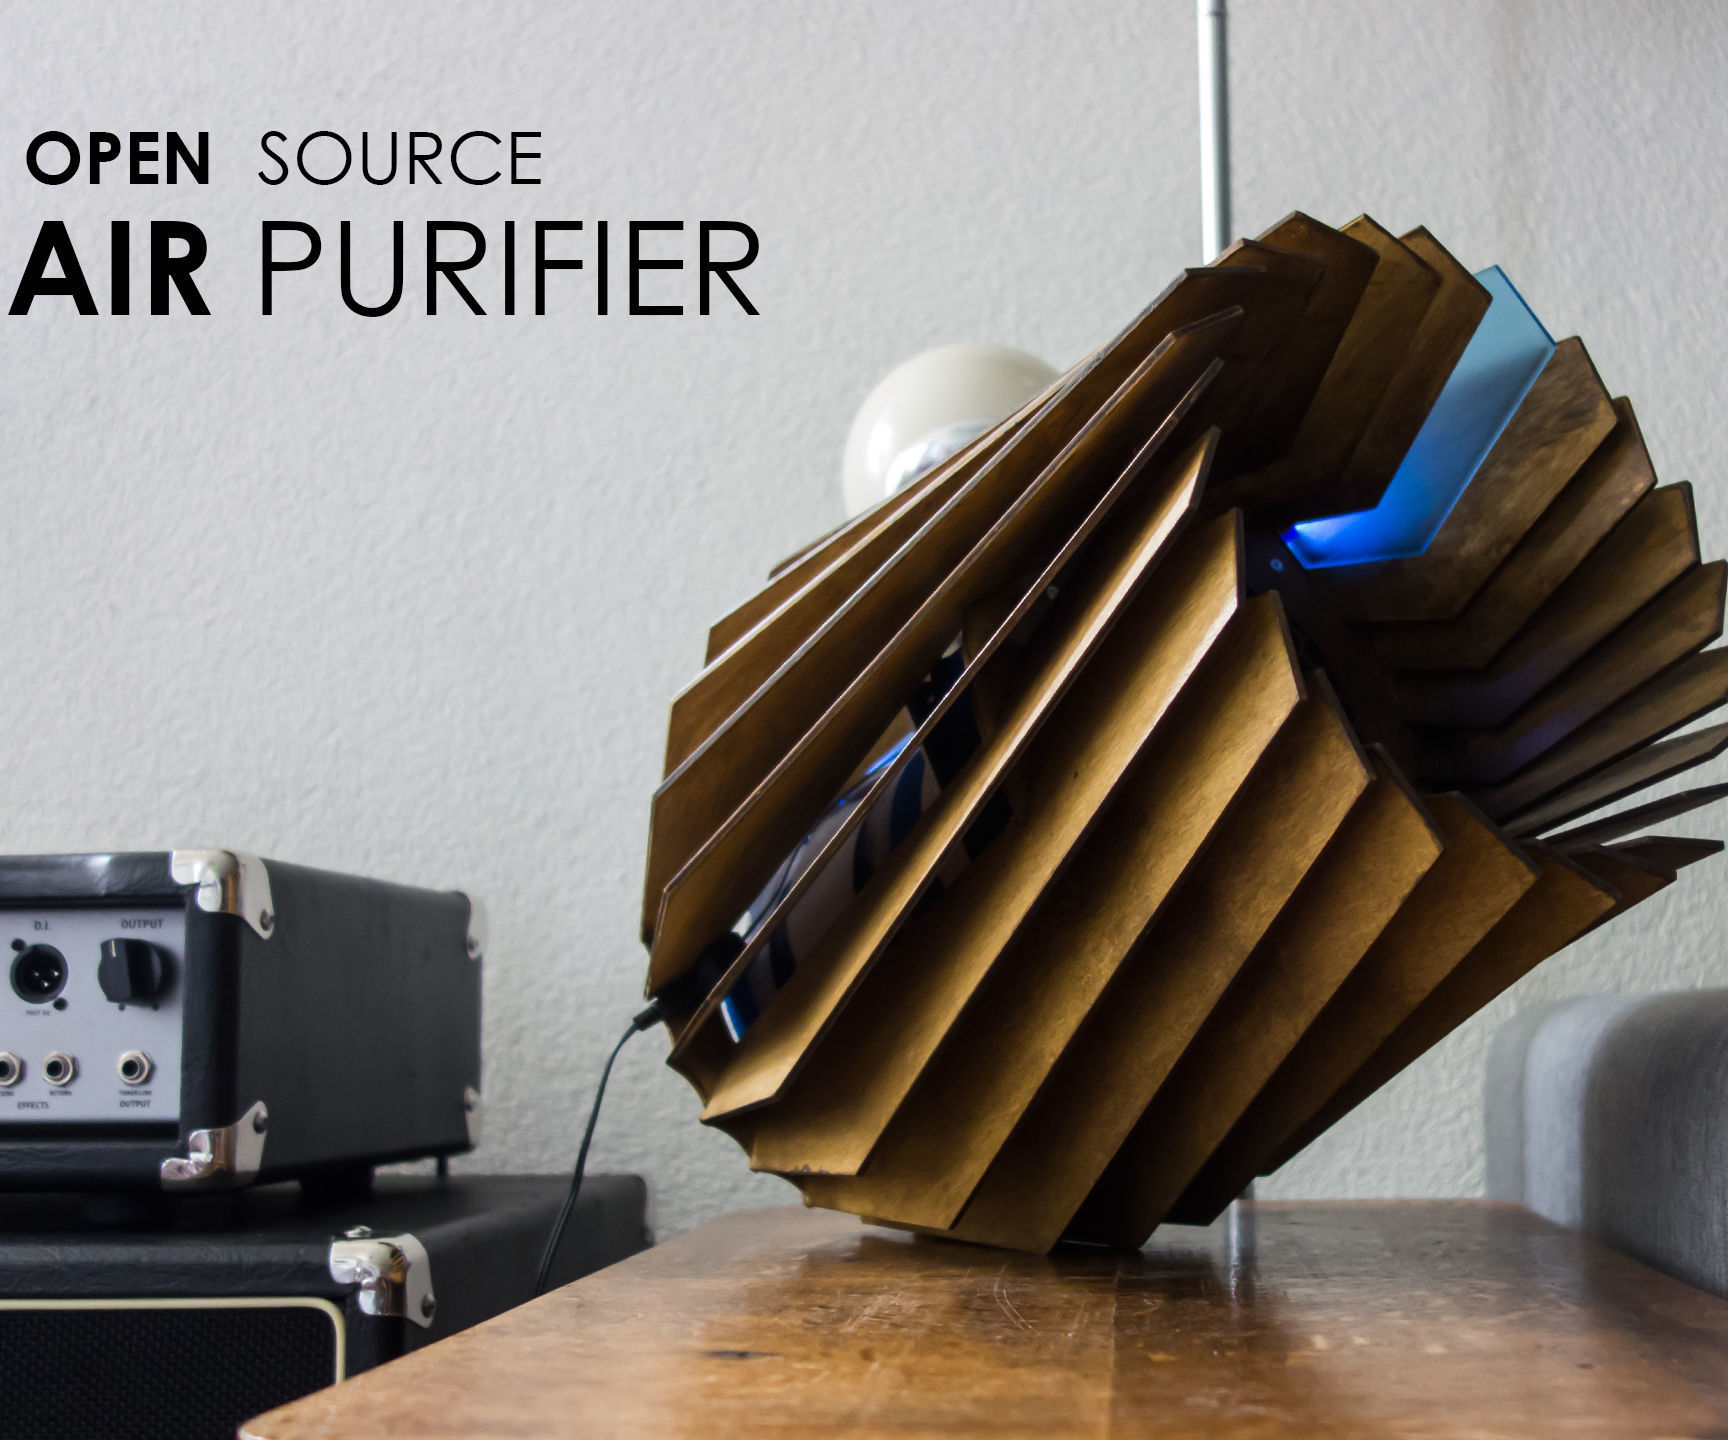 OPEN SOURCE AIR PURIFIER